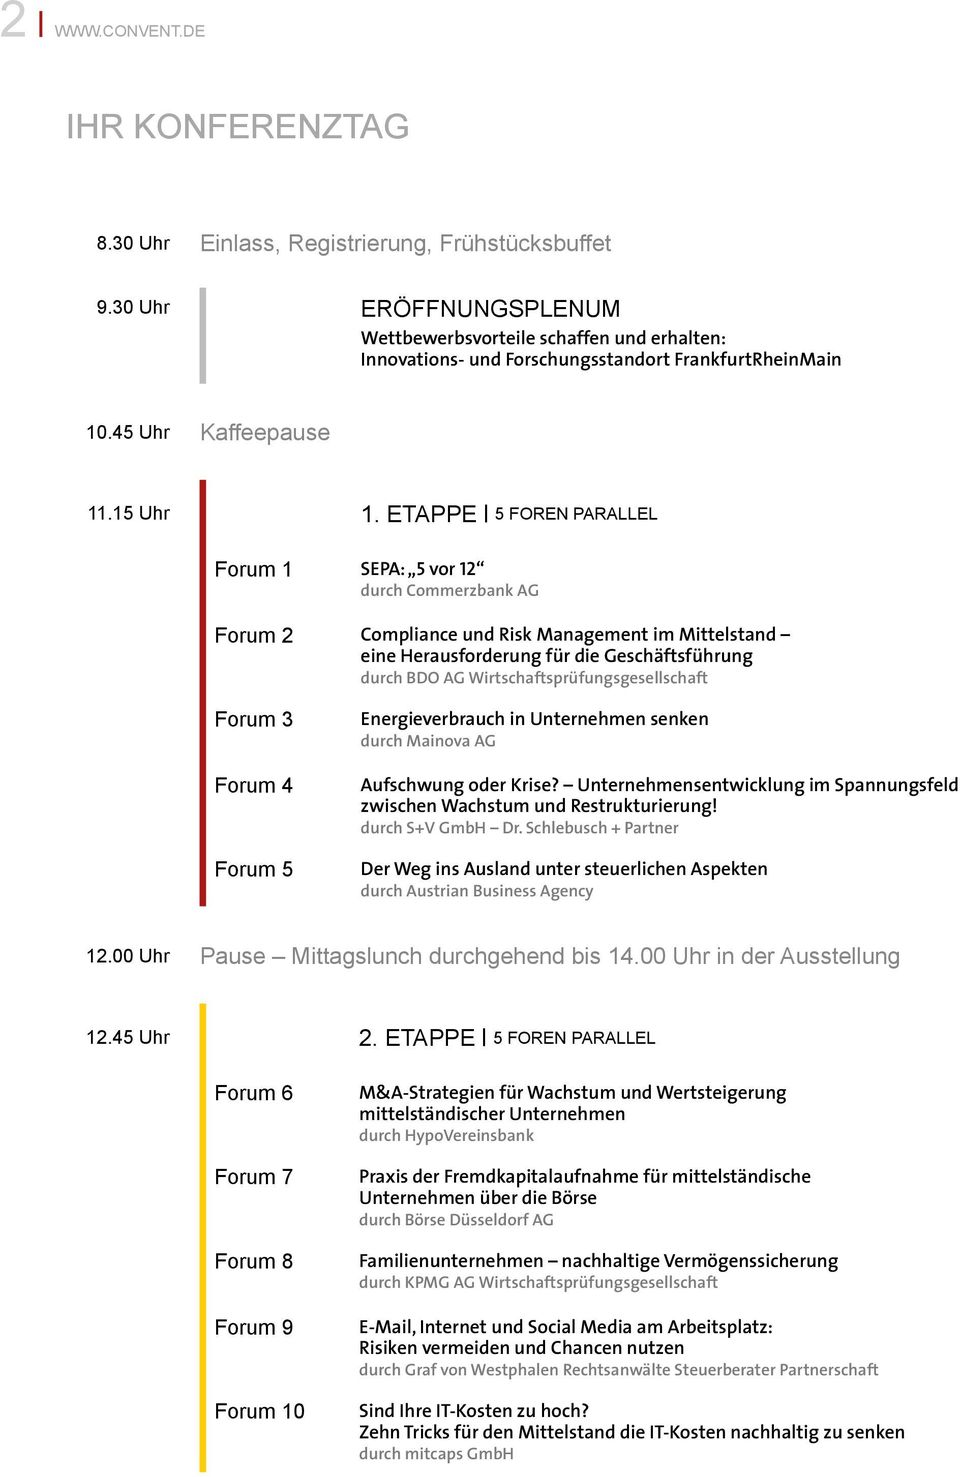 Etappe 5 Foren parallel Forum 1 SEPA: 5 vor 12 durch Commerzbank AG Forum 2 Compliance und Risk Management im Mittelstand eine Herausforderung für die Geschäftsführung durch BDO AG